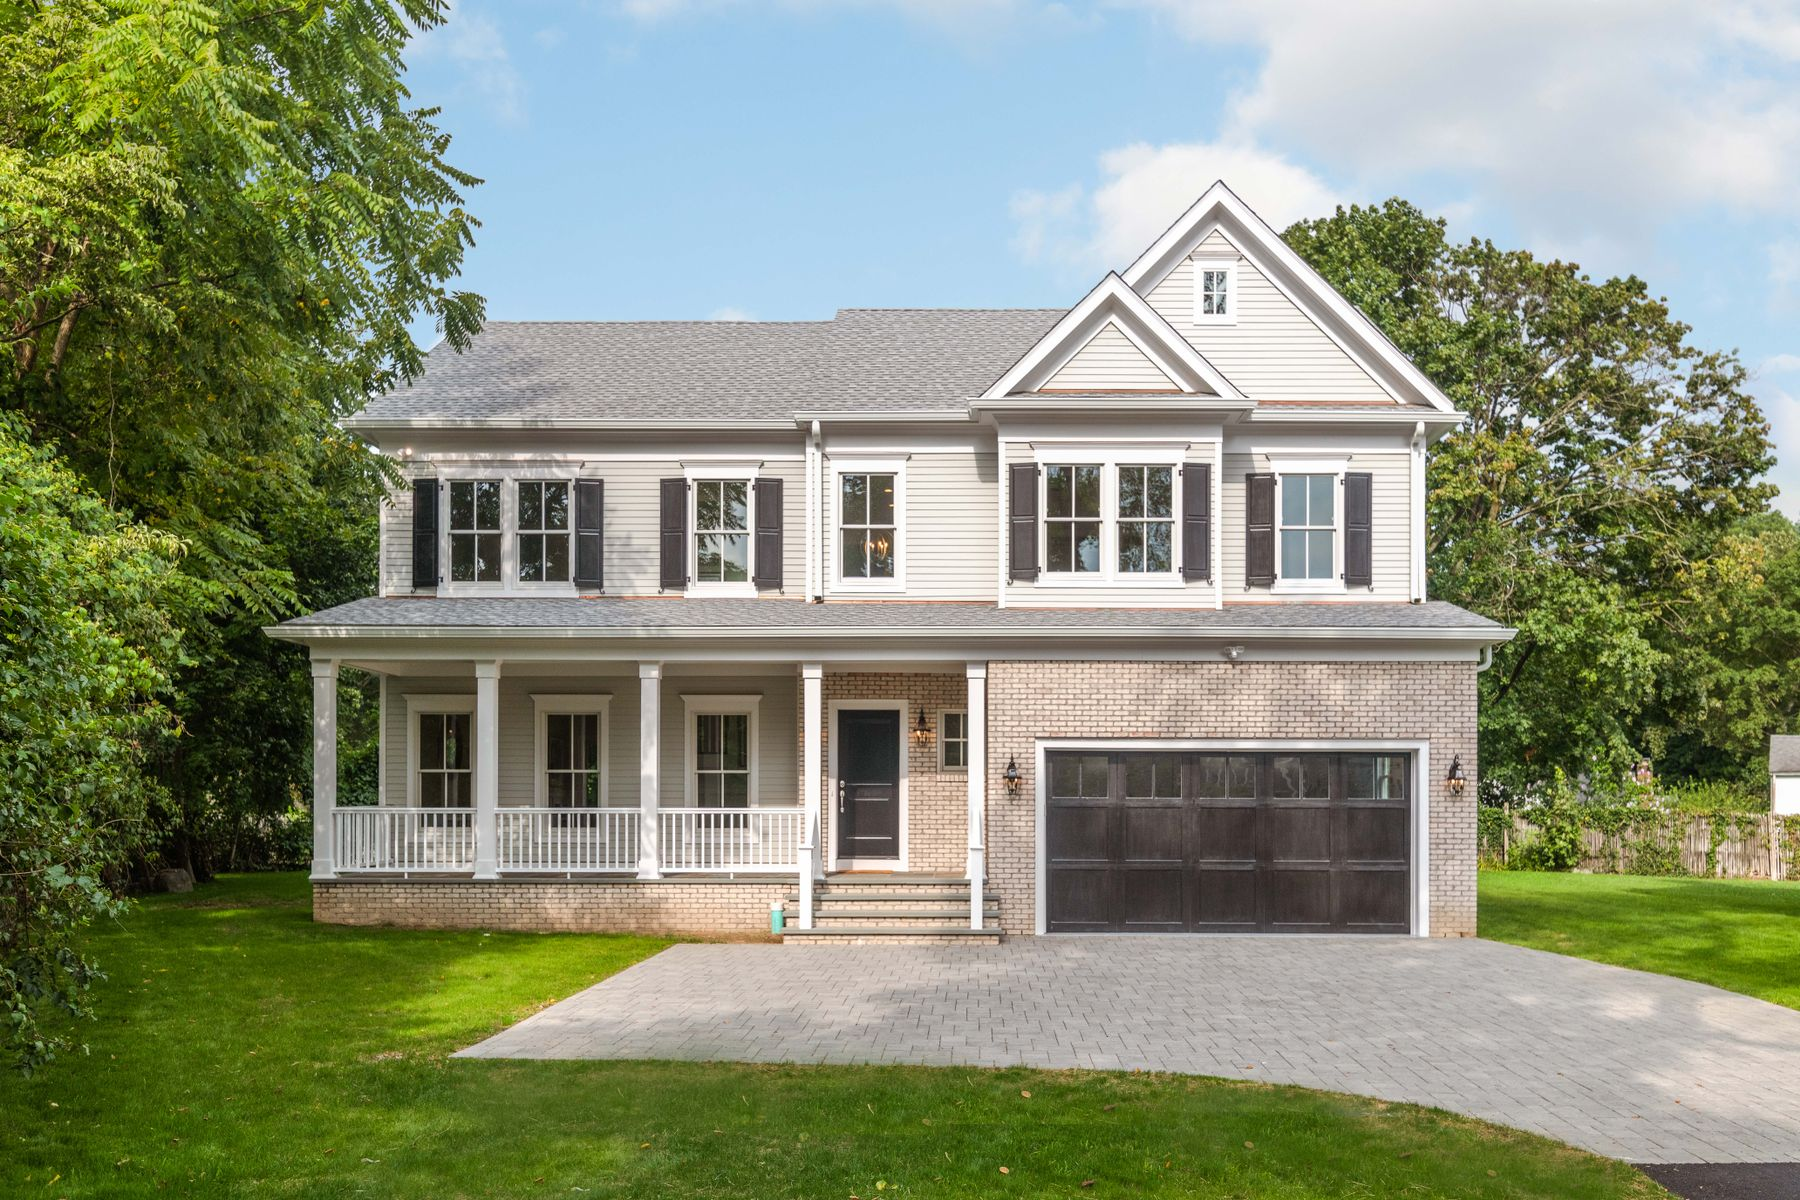 Single Family Homes for Sale at Live Abundantly in Old Greenwich 46 Sound Beach Avenue Old Greenwich, Connecticut 06870 United States